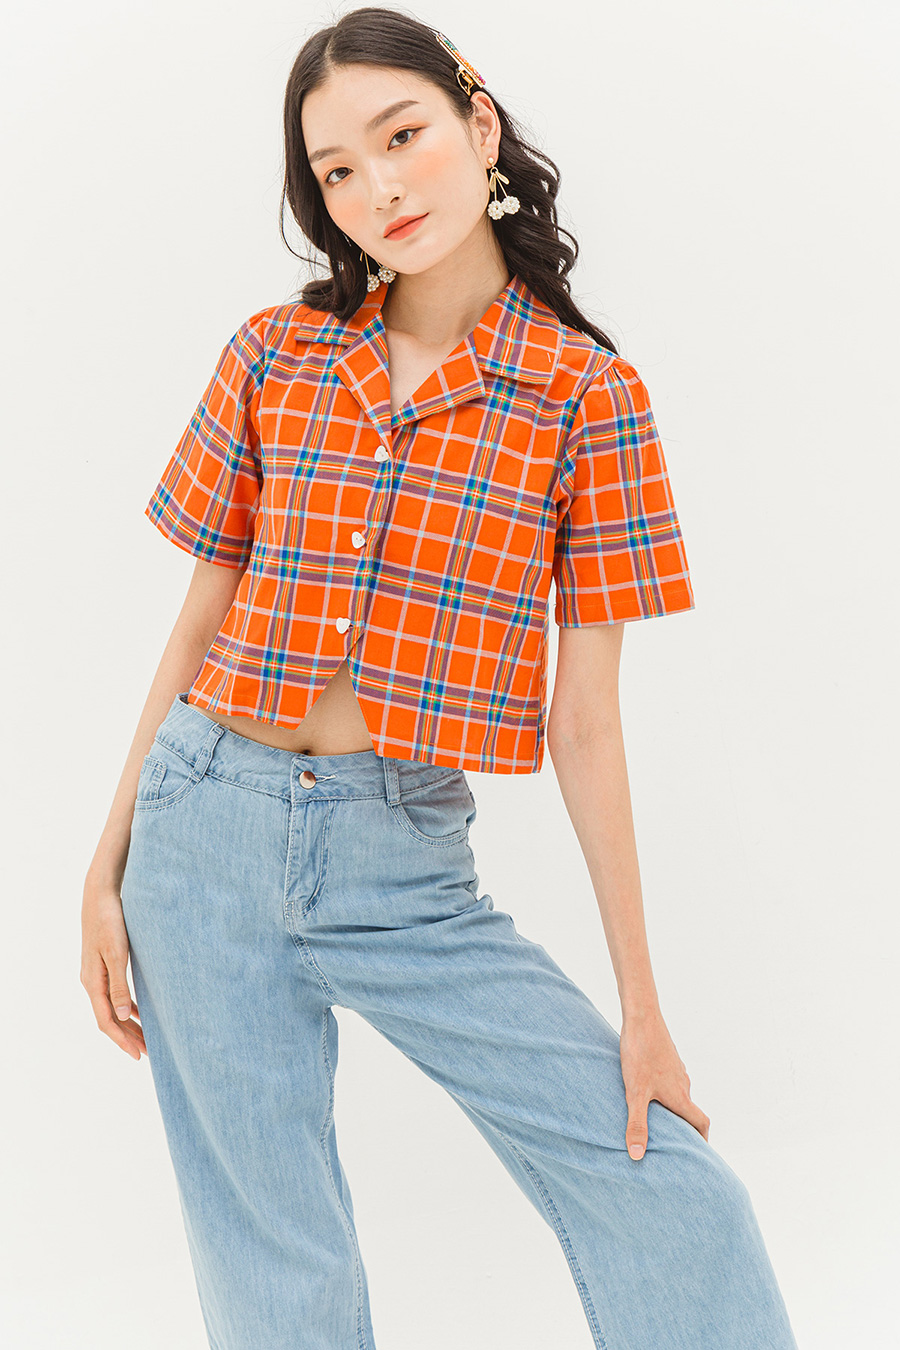 PIPER TOP - PLAID